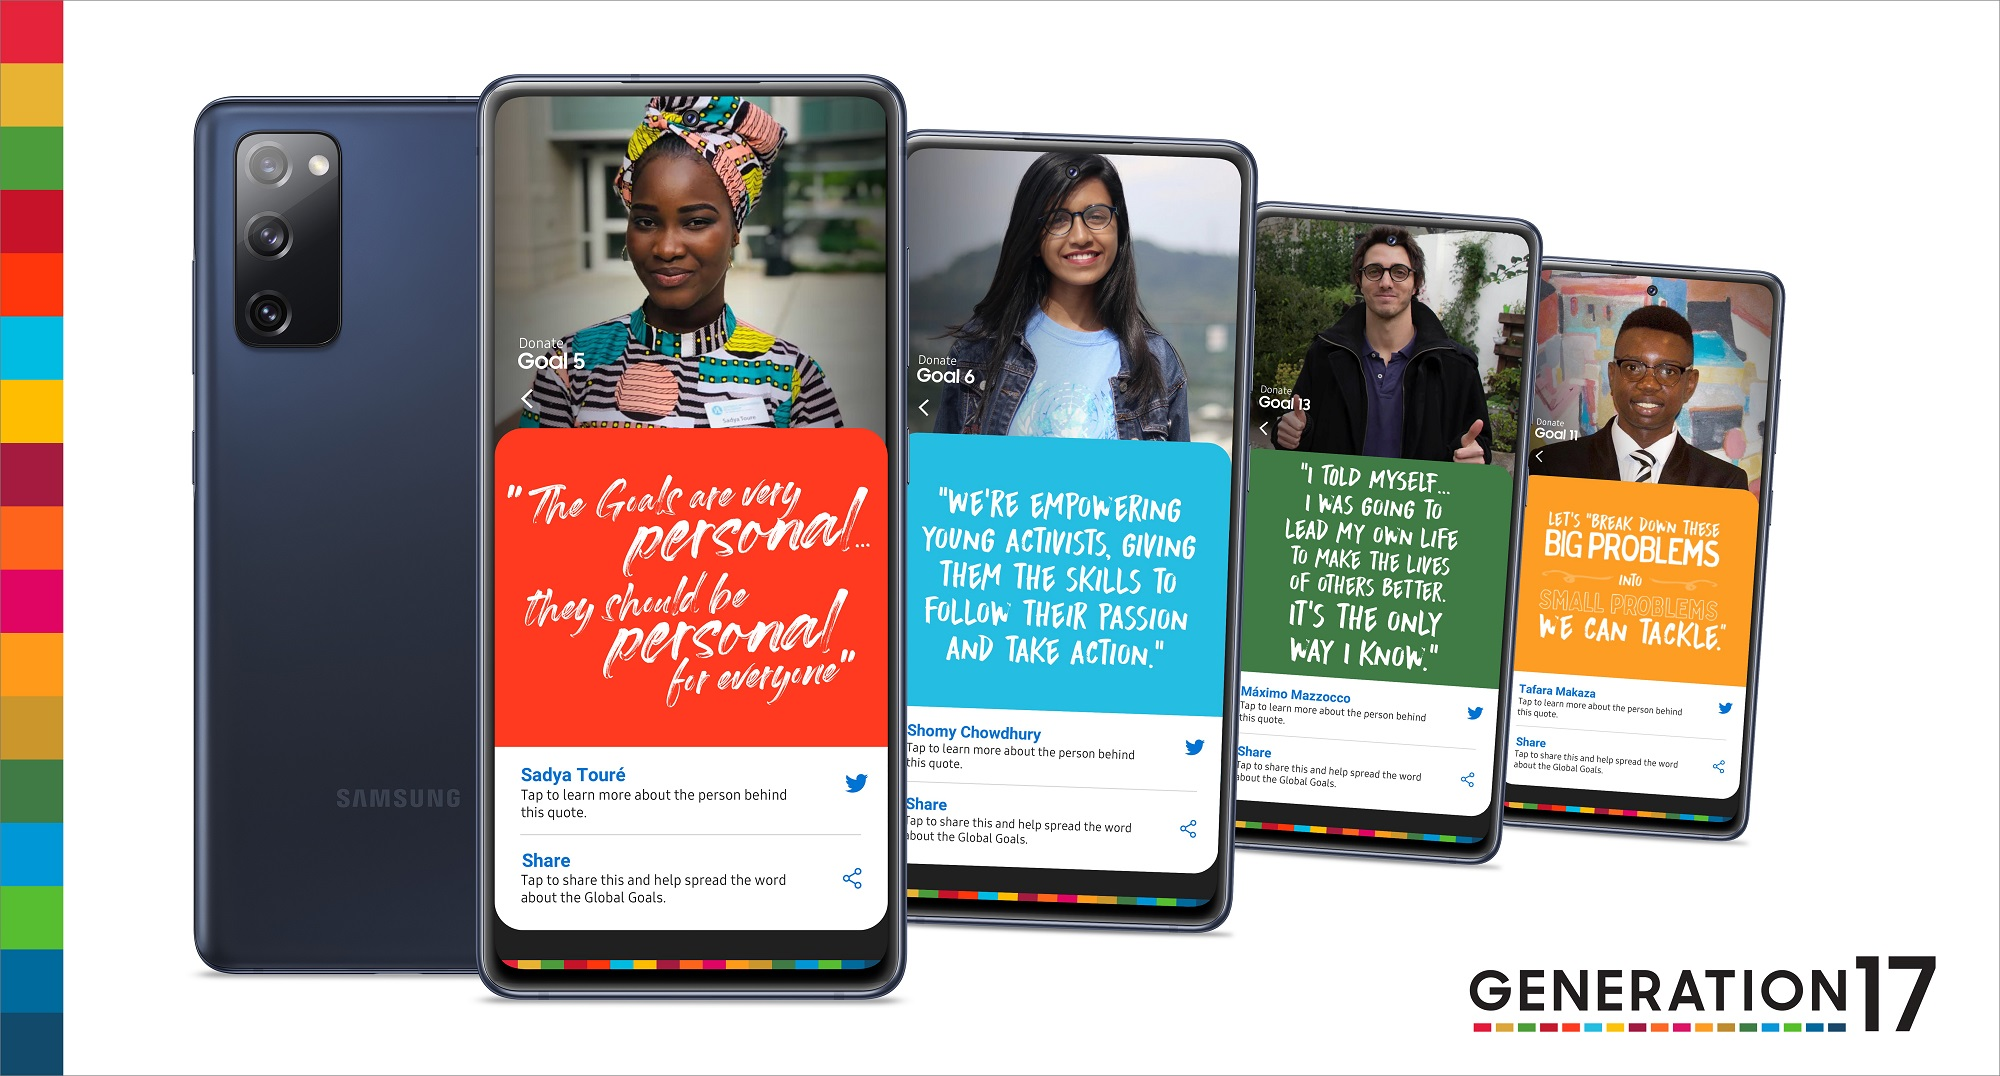 Samsung and the United Nations Development Programme Partner With Youth to Accelerate Progress for the Global Goals